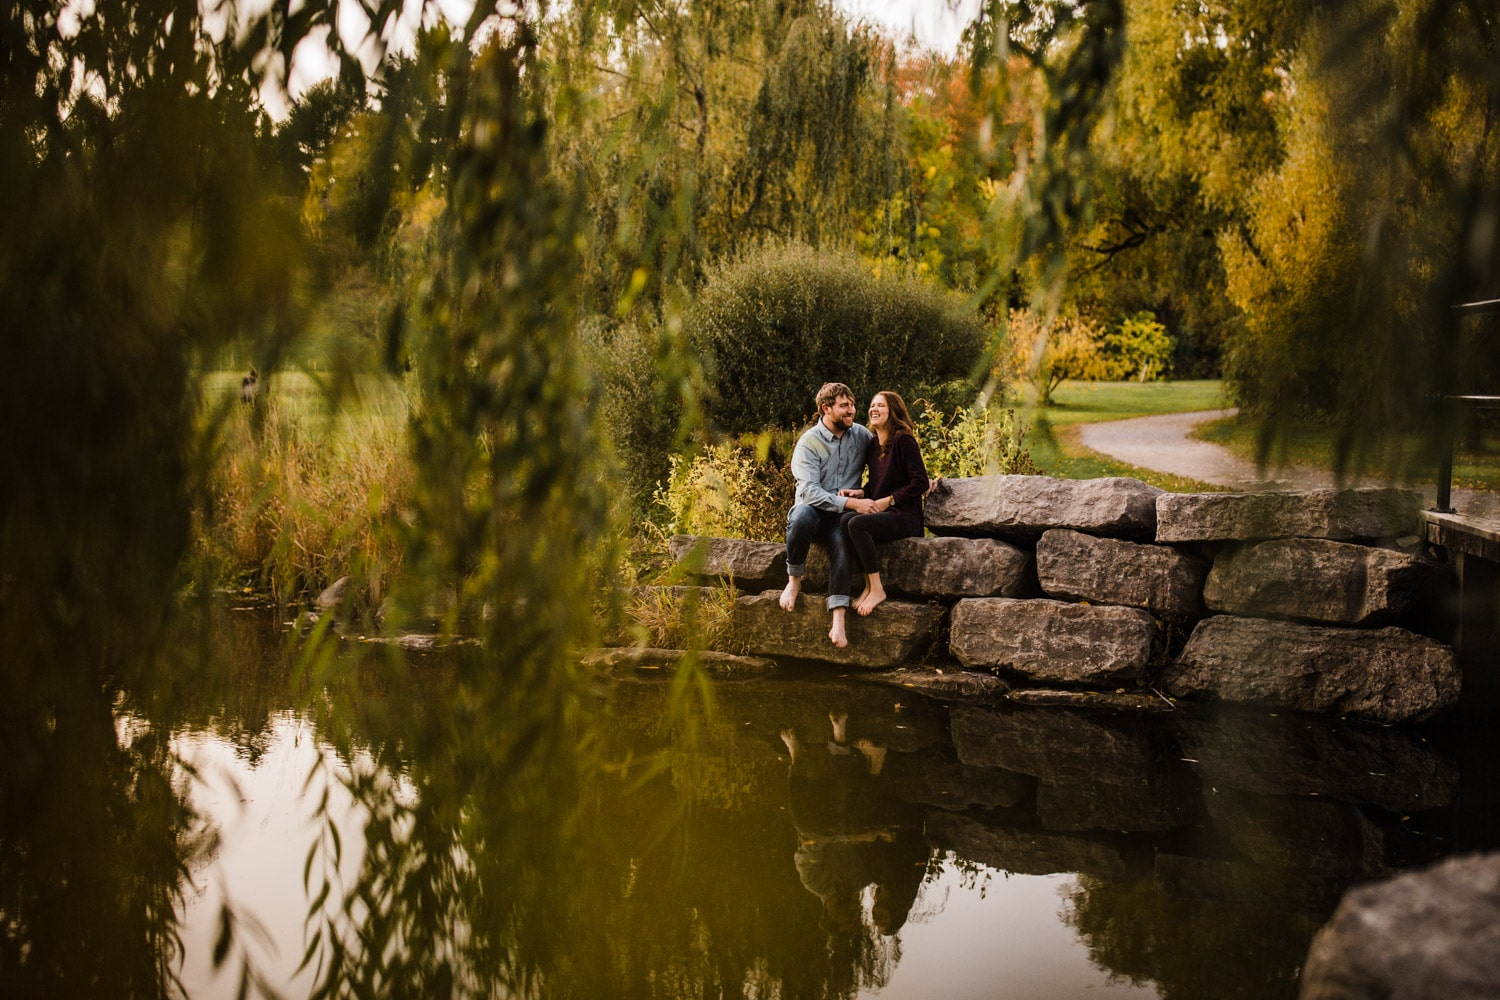 couple sit by pond and laugh together